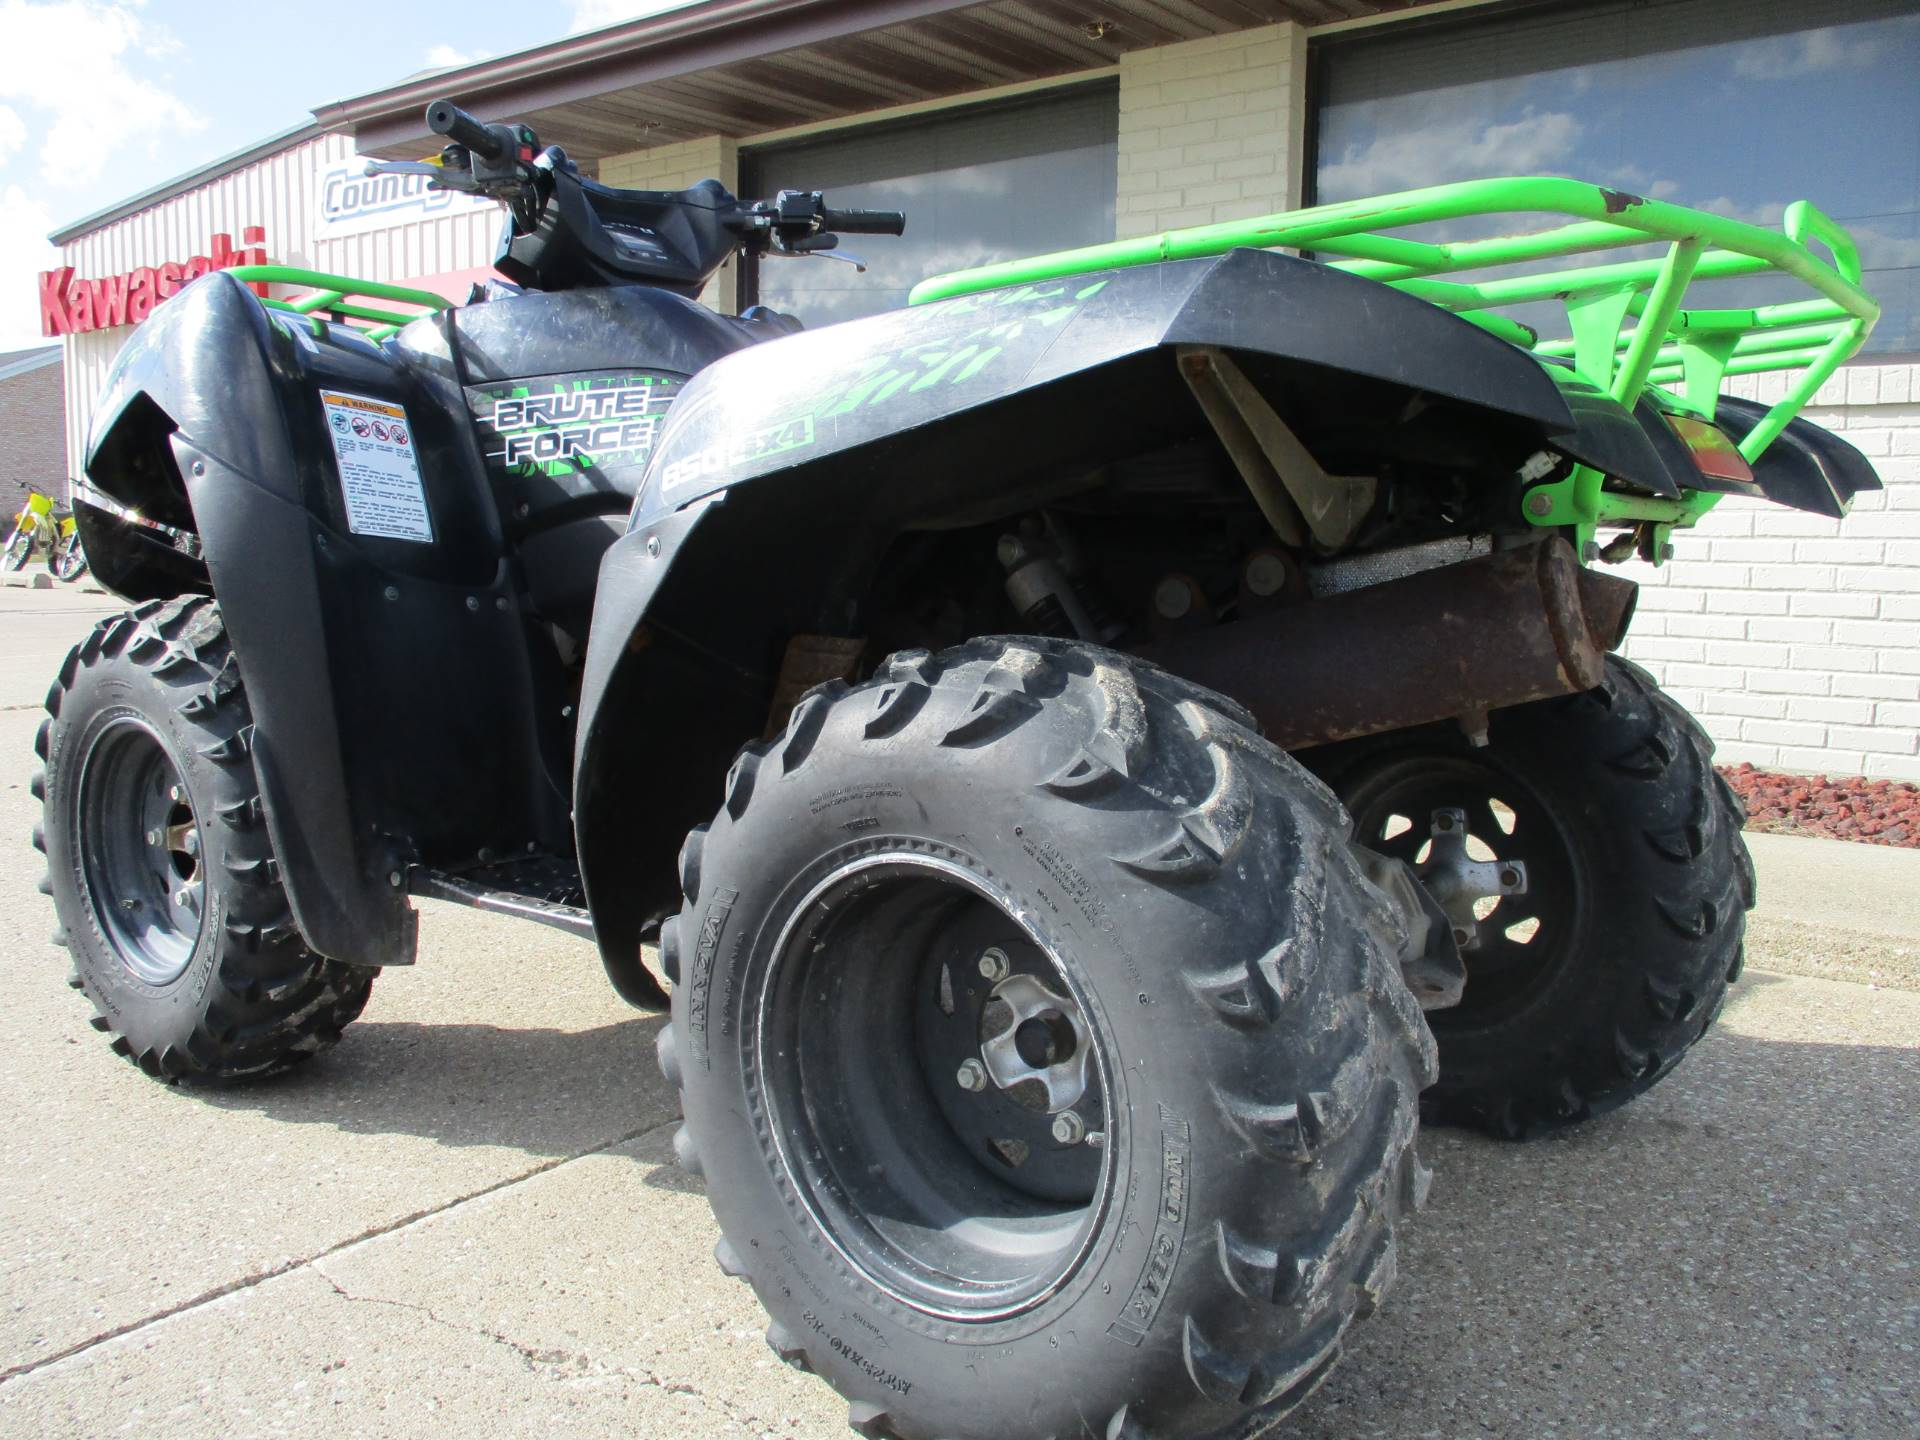 2011 Kawasaki Brute Force® 650 4x4 in Winterset, Iowa - Photo 6